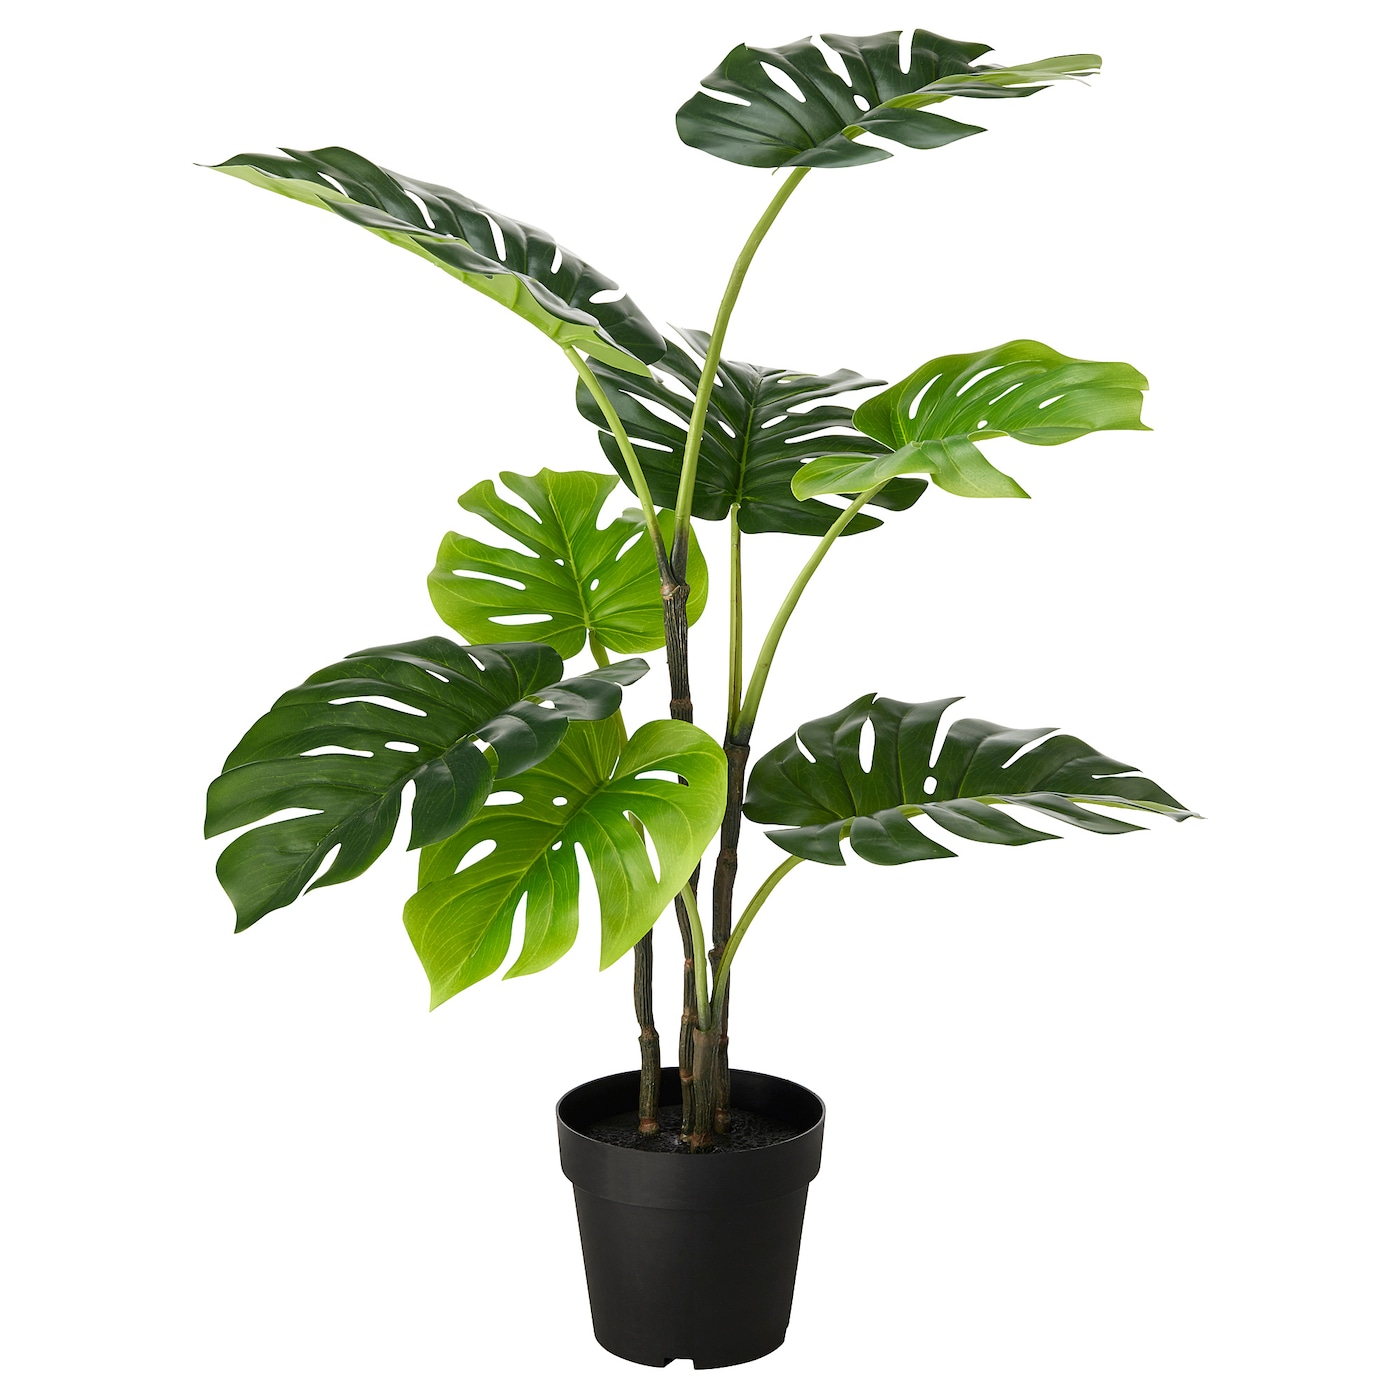 225 & FEJKA - Artificial potted plant indoor/outdoor monstera